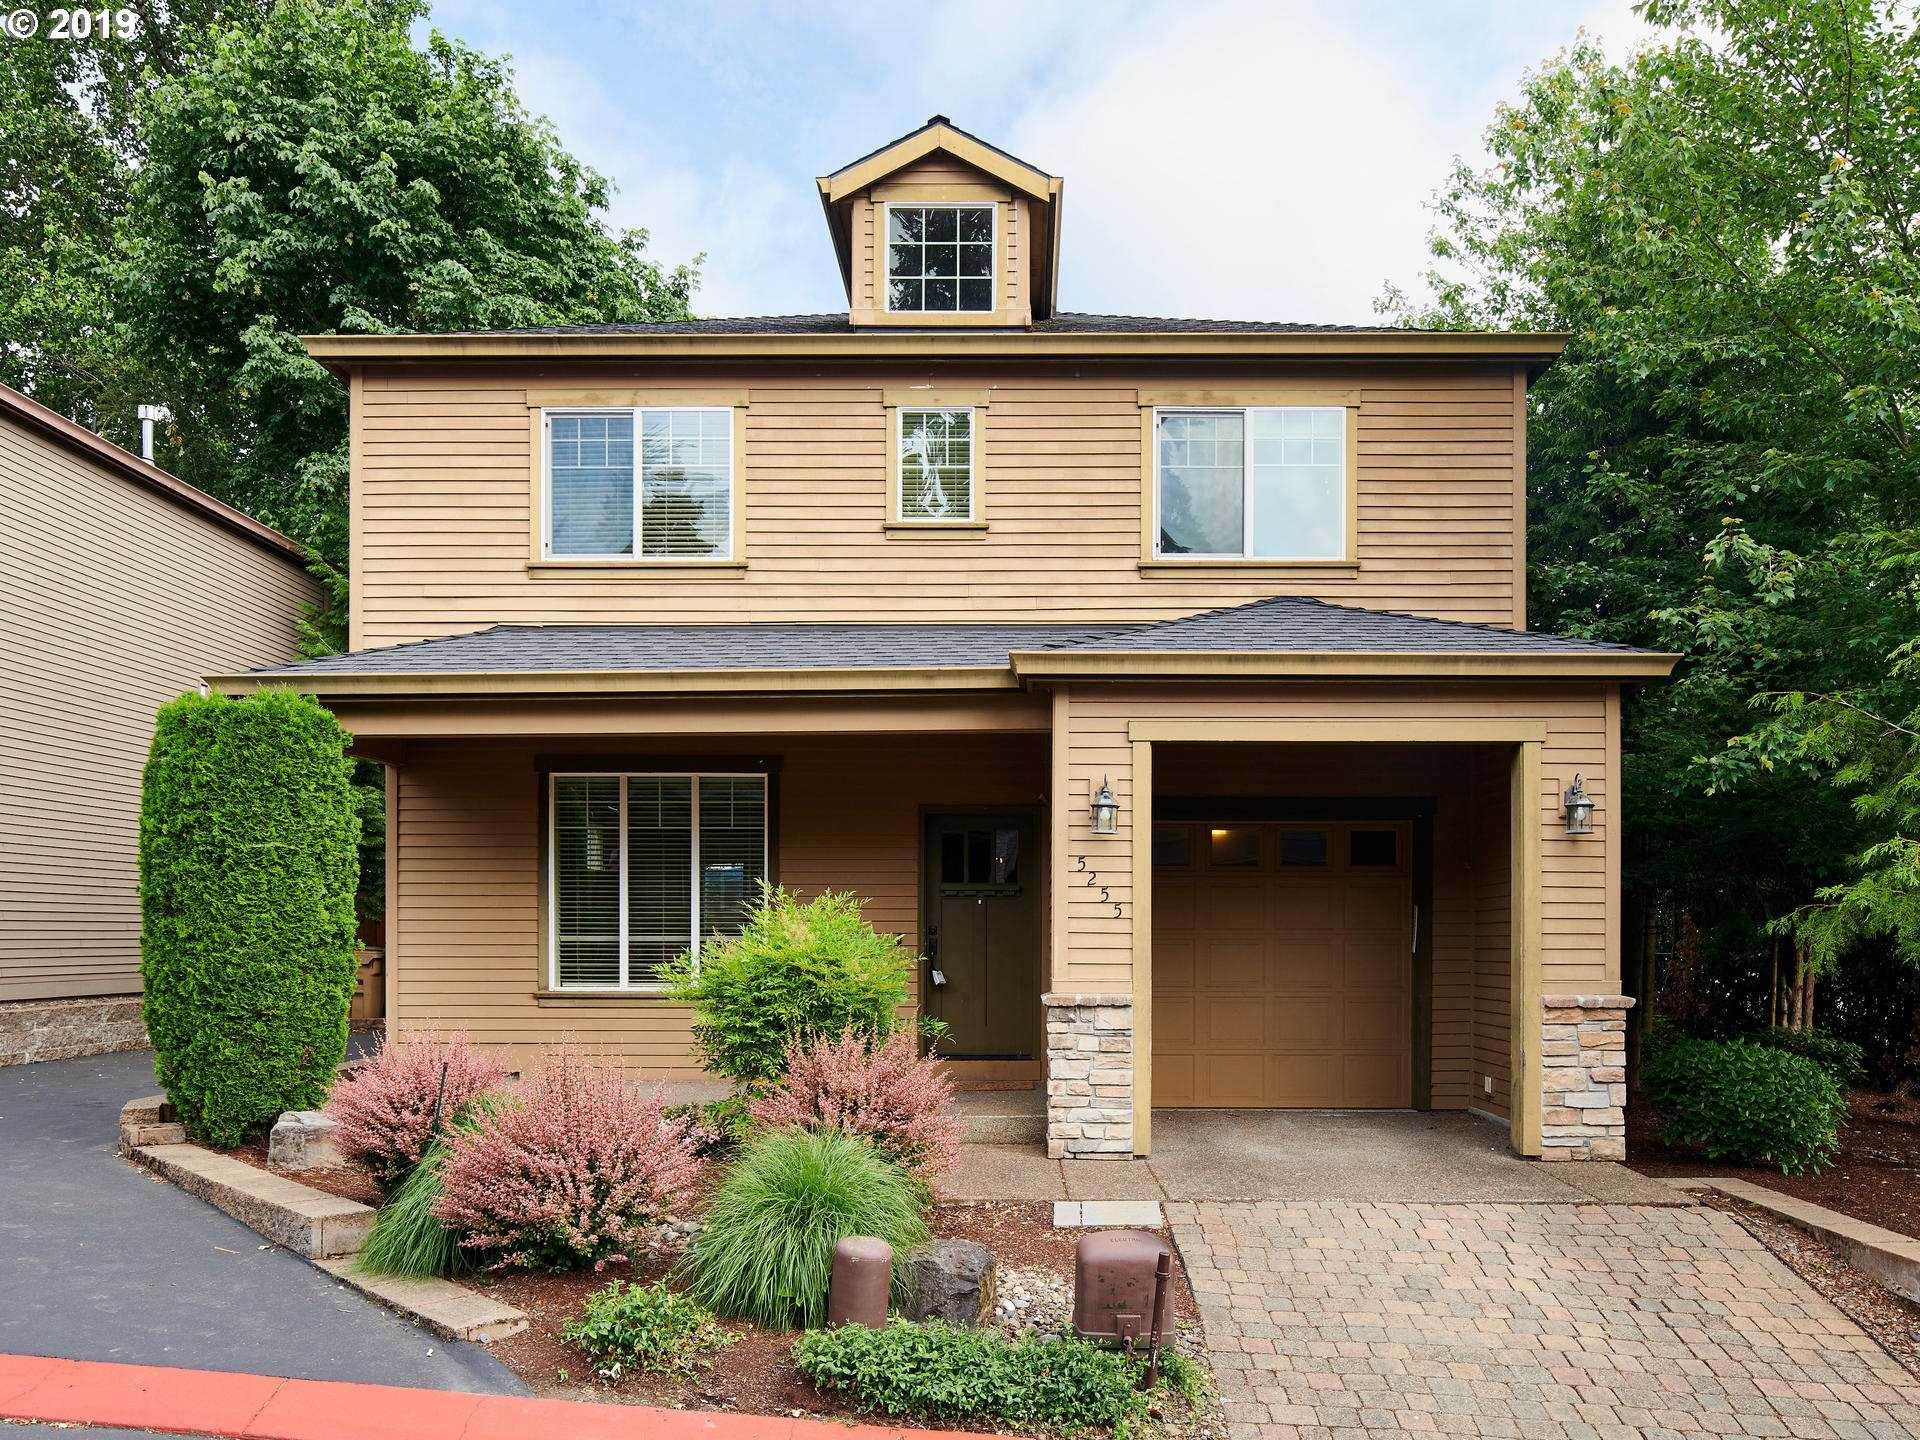 $350,000 - 3Br/3Ba -  for Sale in Milwaukie